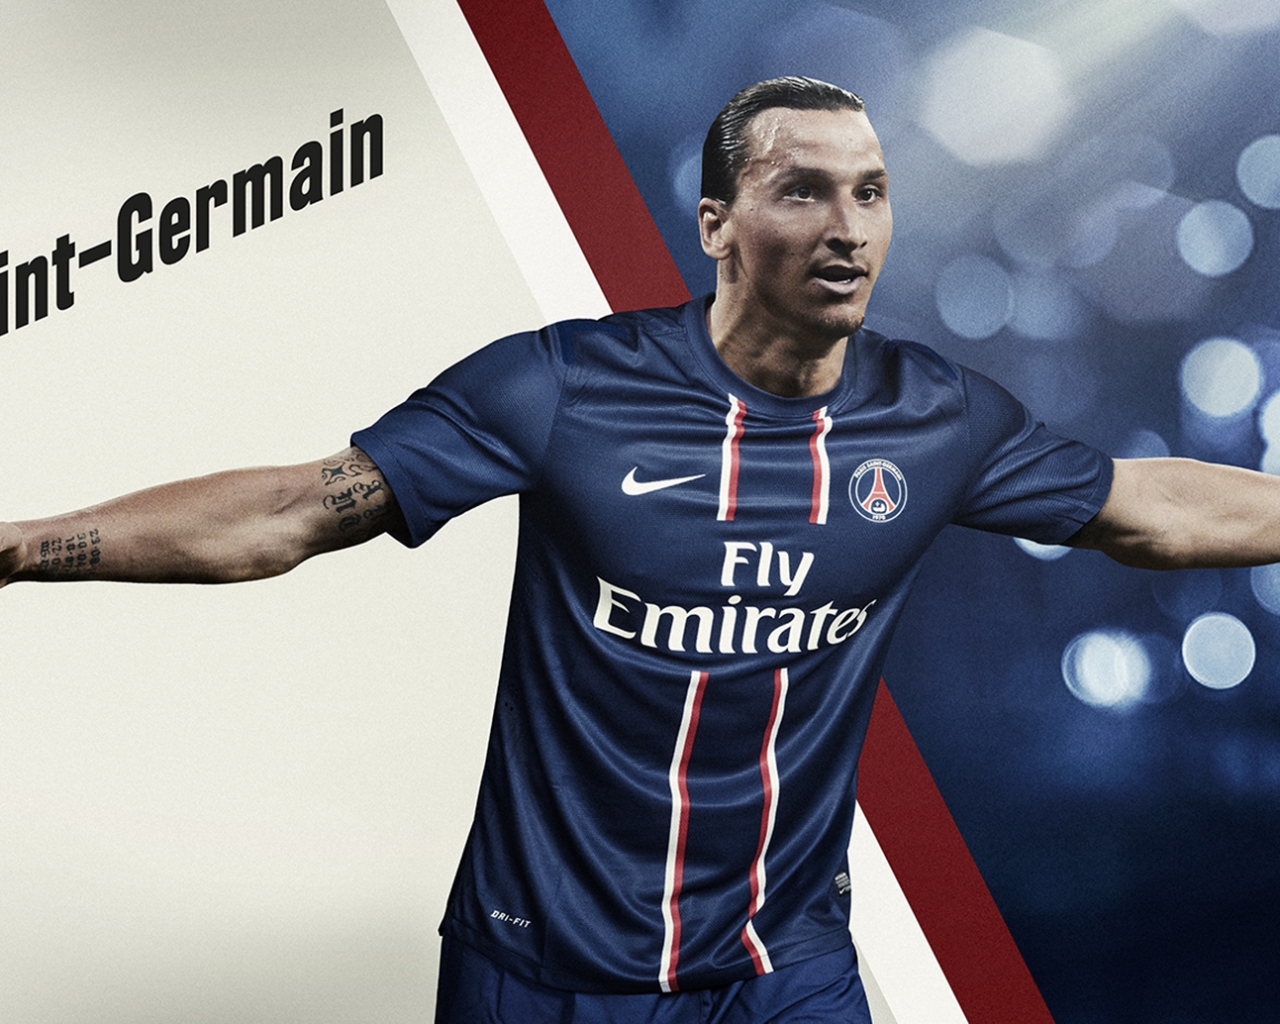 Zlatan Ibrahimovic Wallpaper